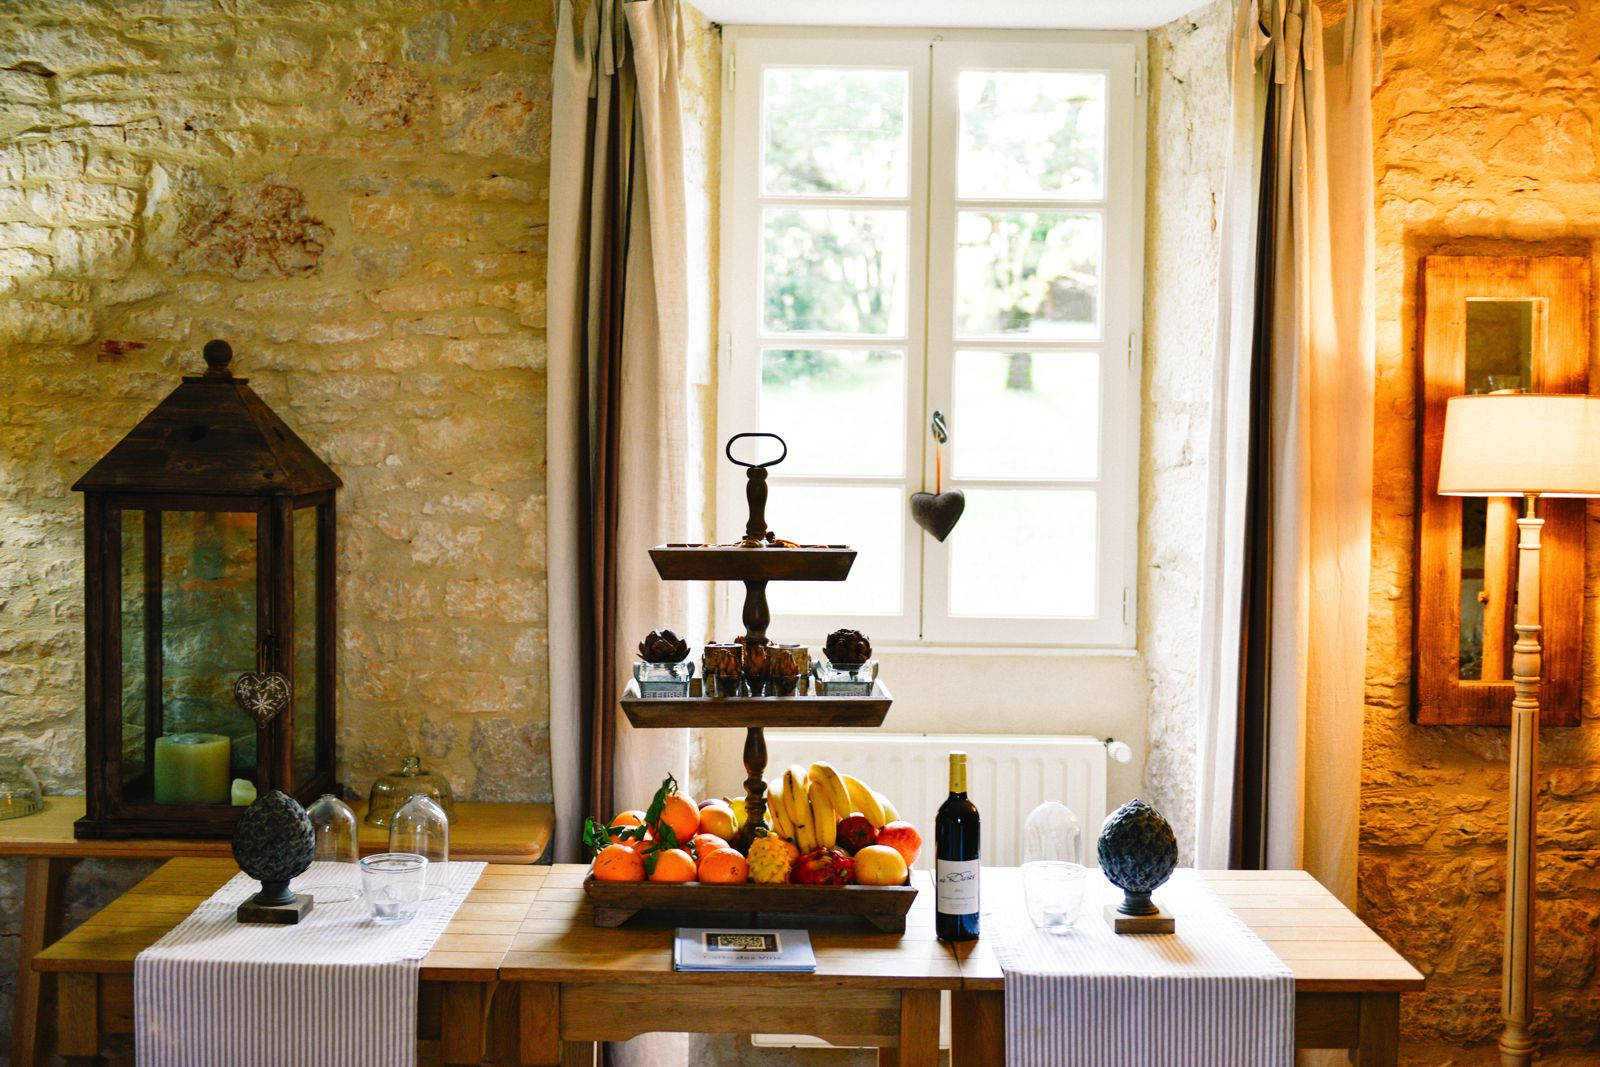 Truffle-Hunting, Chateau-Living And Wine-Tasting In the French Dordogne Valley (45)